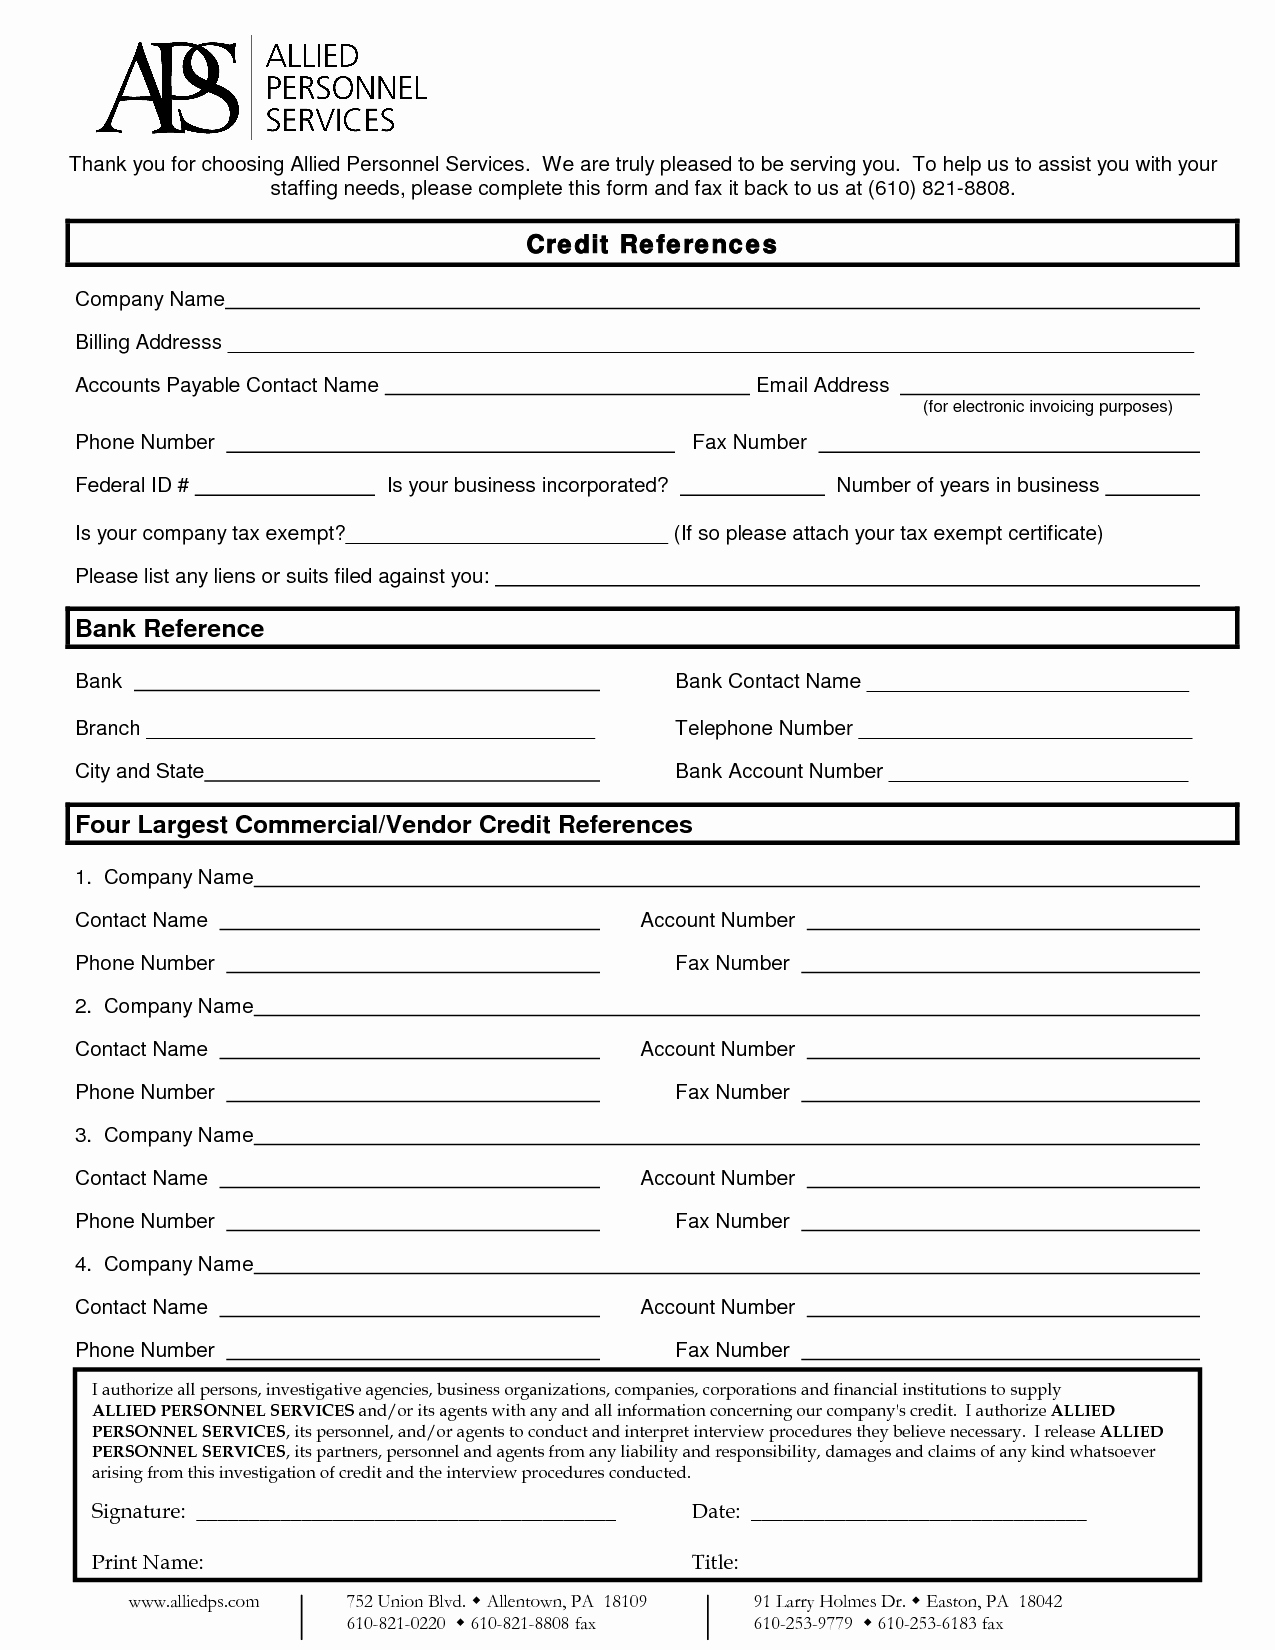 Credit Reference form Template Awesome Business Credit Reference Template Free Printable Documents